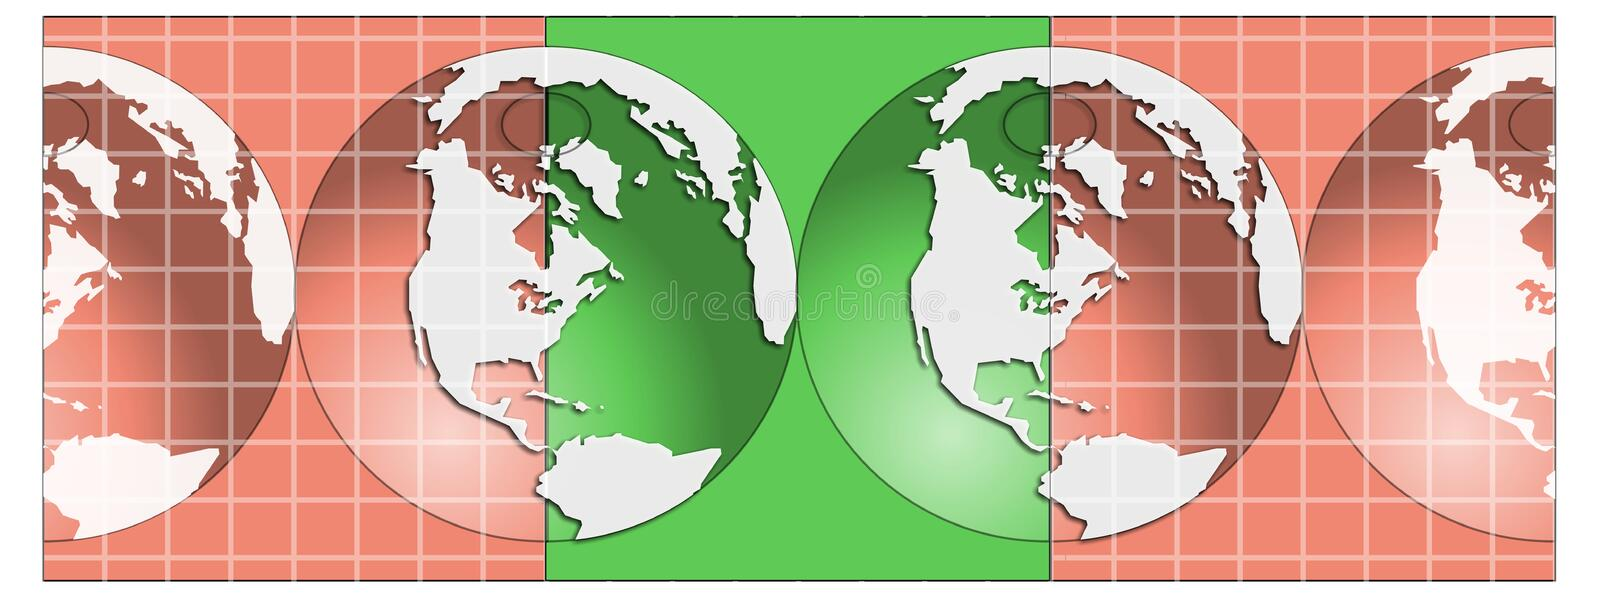 Globes illustration stock illustration